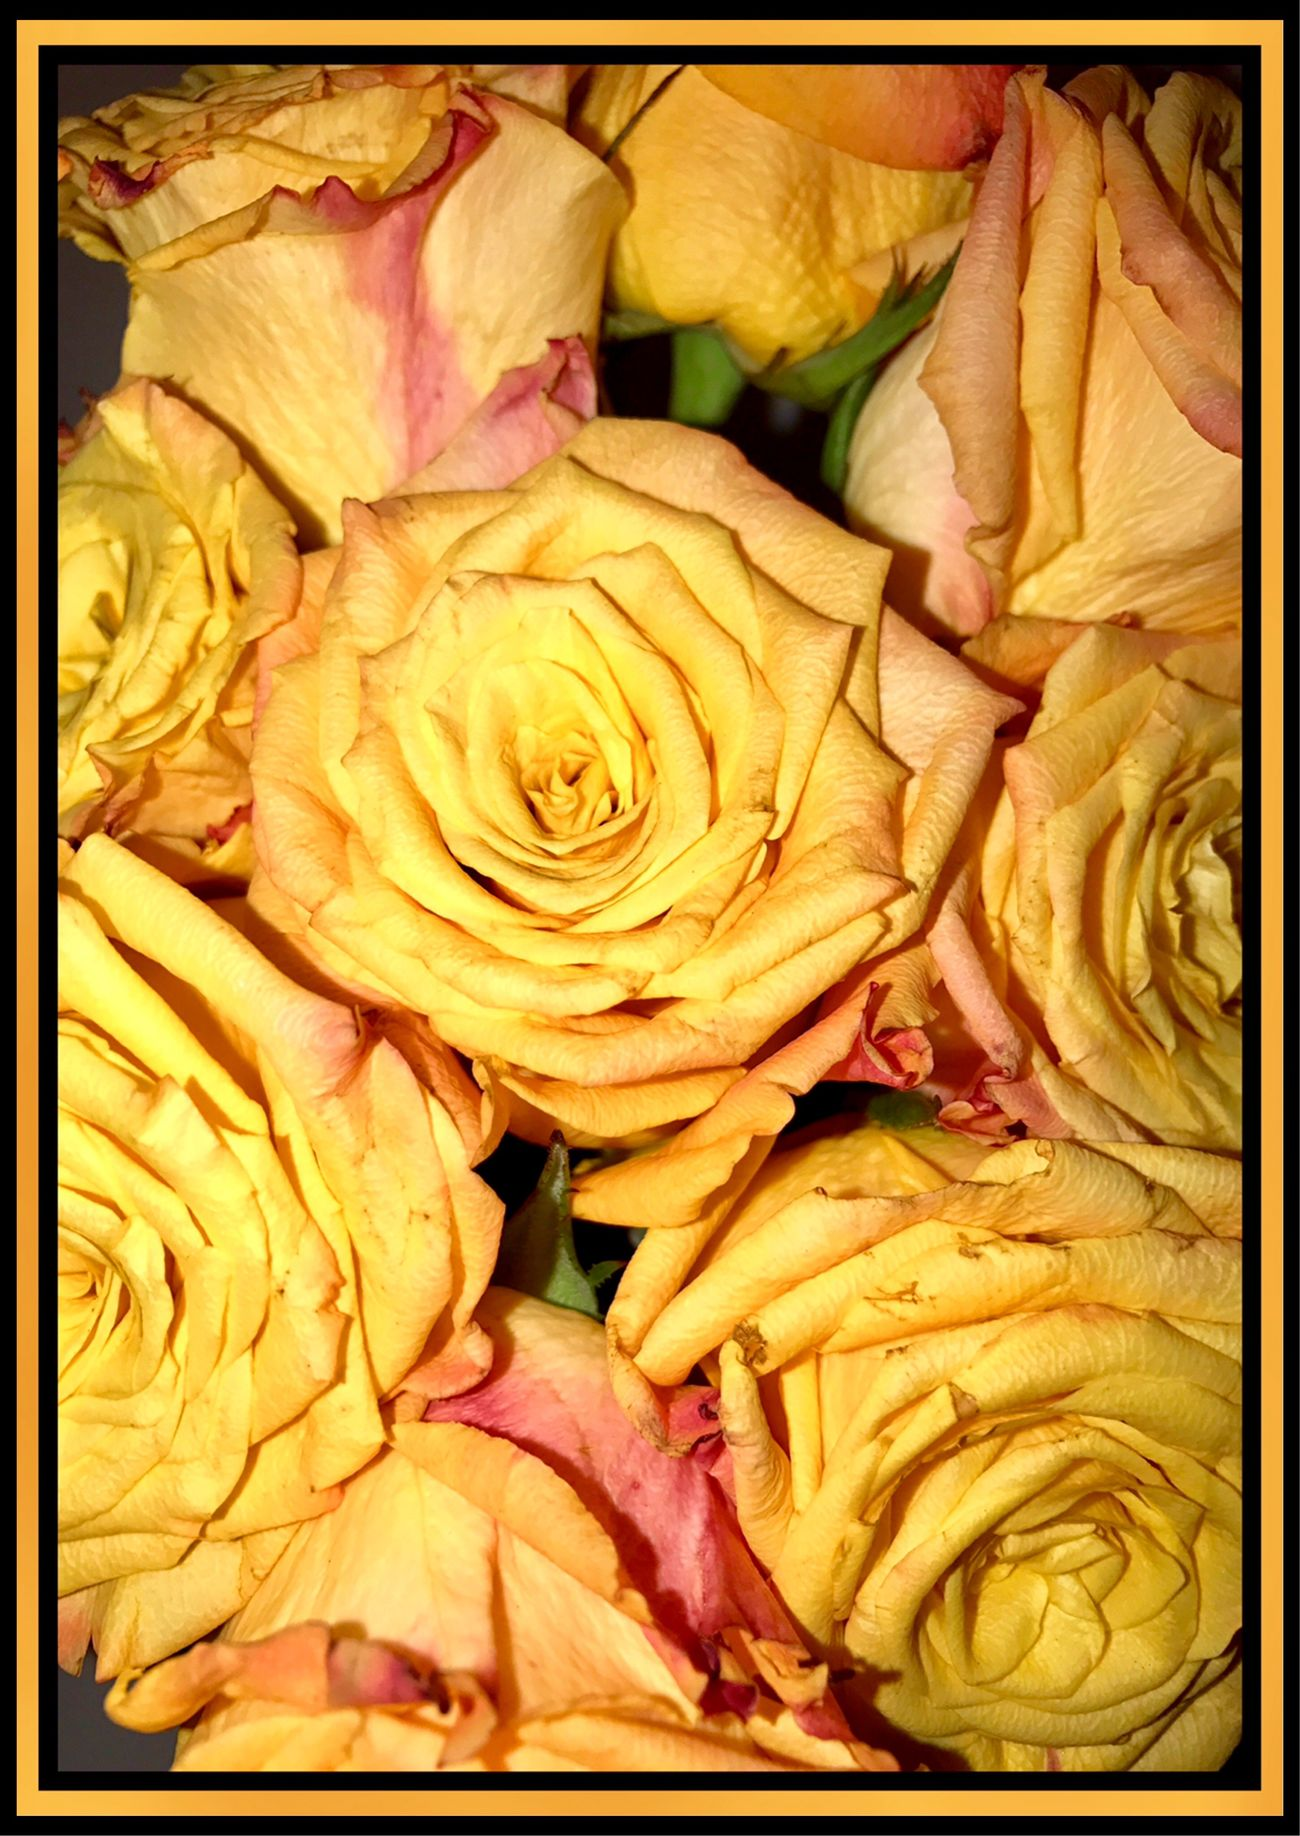 Roses 🌹🍃🌹 Roses Orange Rose Bouquet Gift Flower Collection Flowers Of EyeEm Flower Photography 🌹🍃🌹